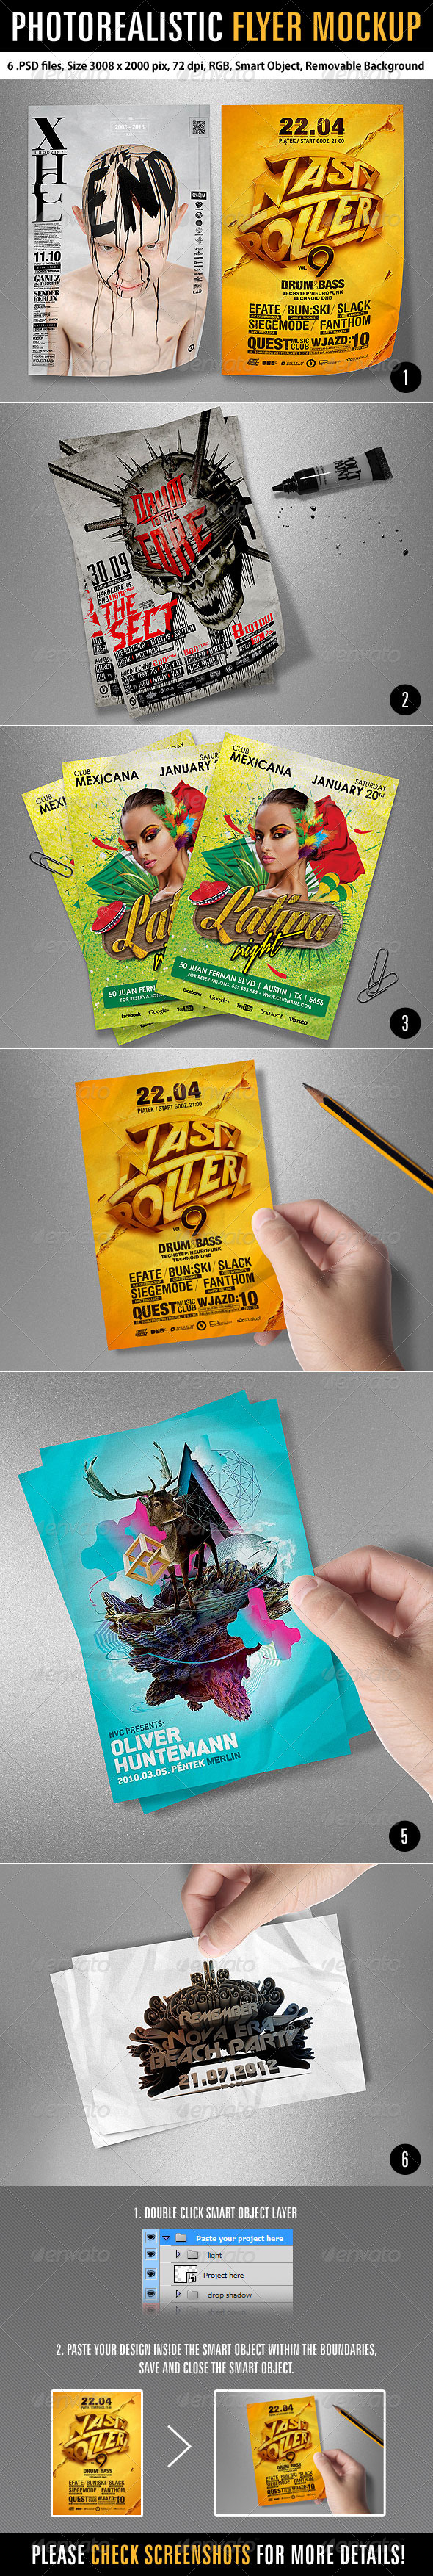 Photorealistic Flyer Mockup - Product Mock-Ups Graphics